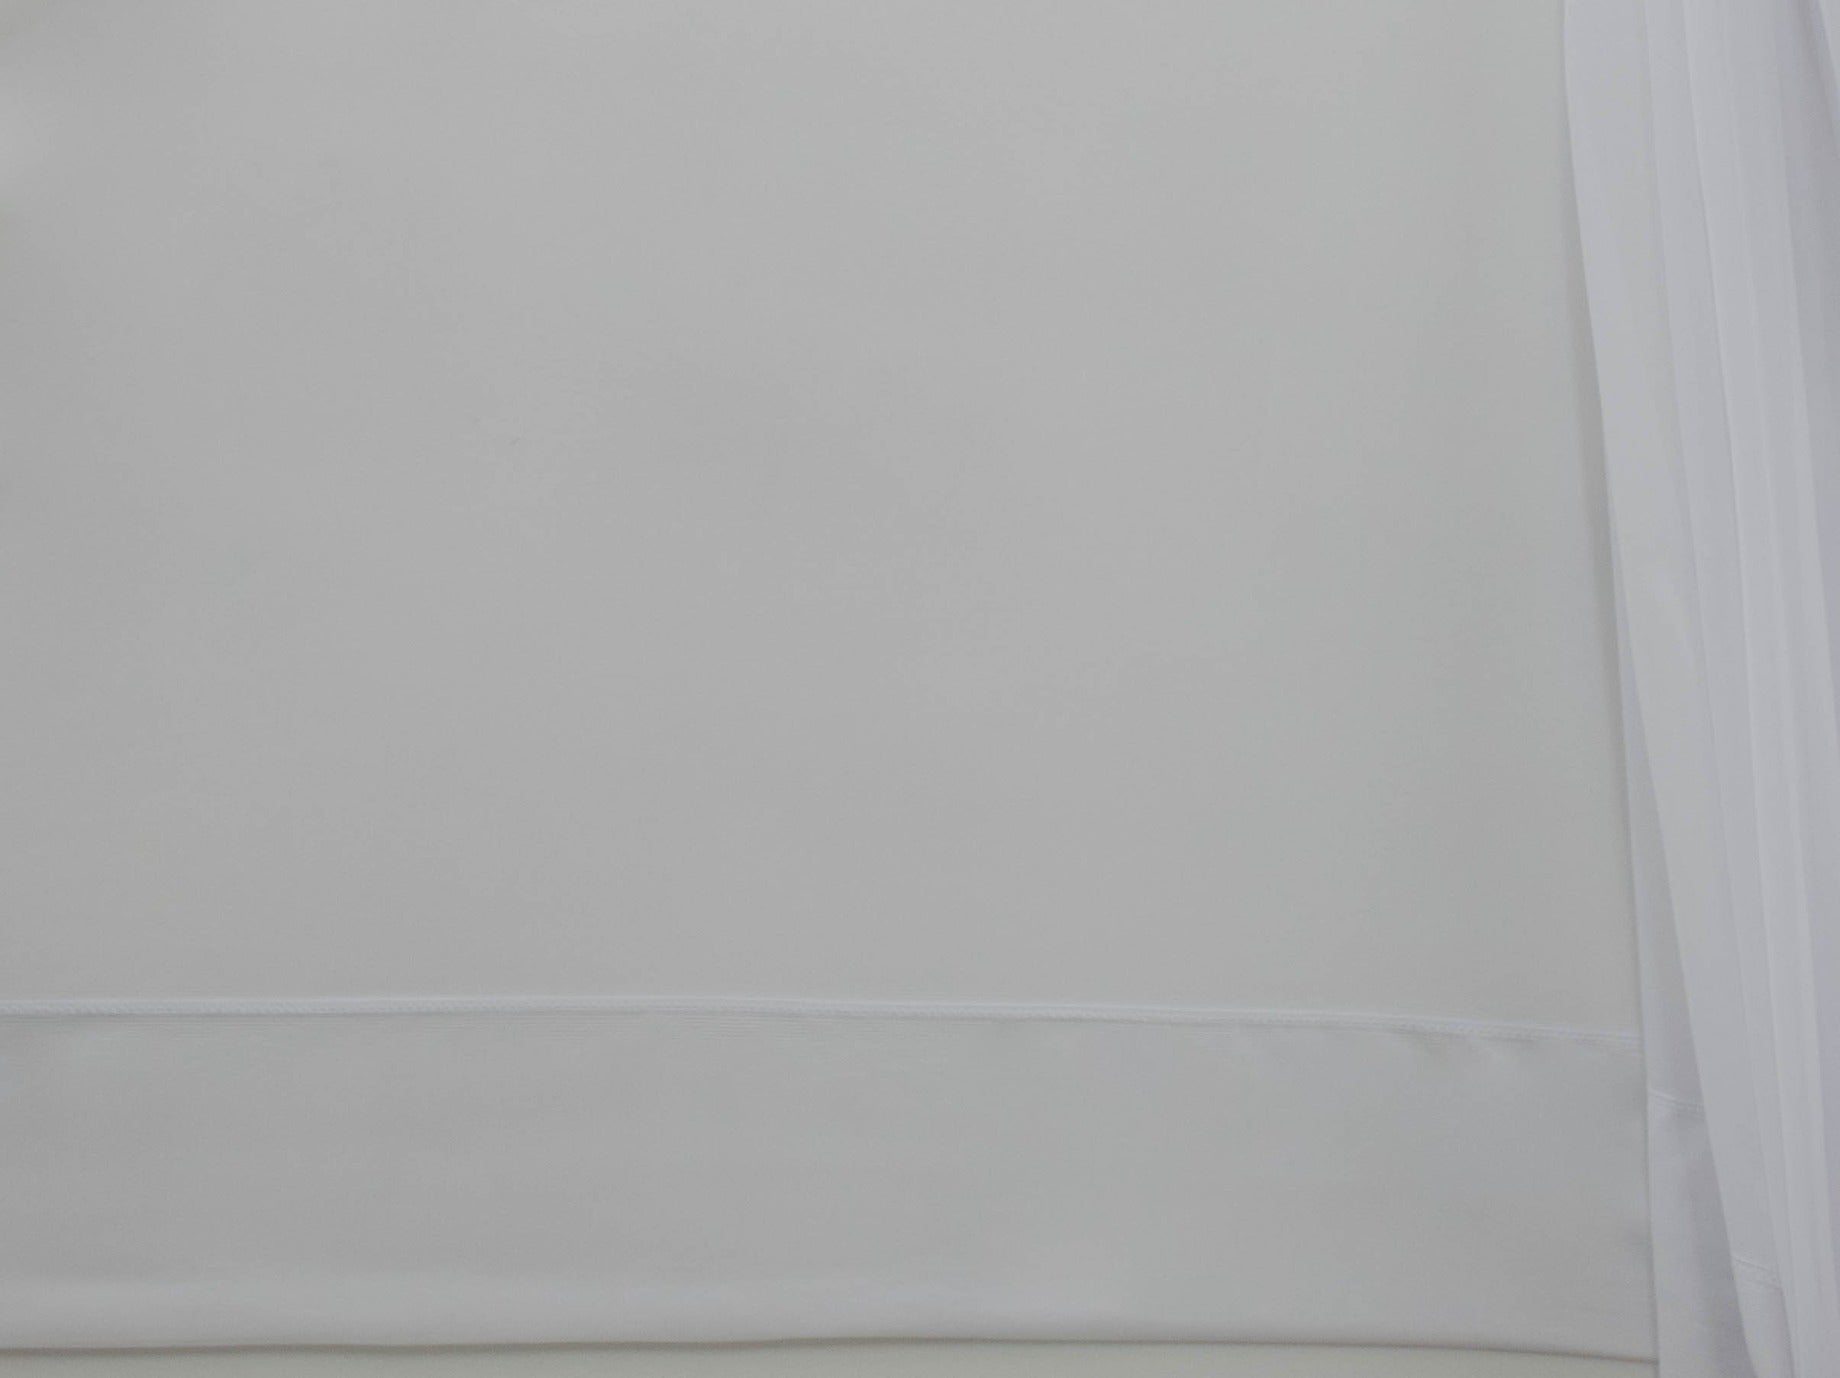 120cm PLAIN NETT CURTAIN